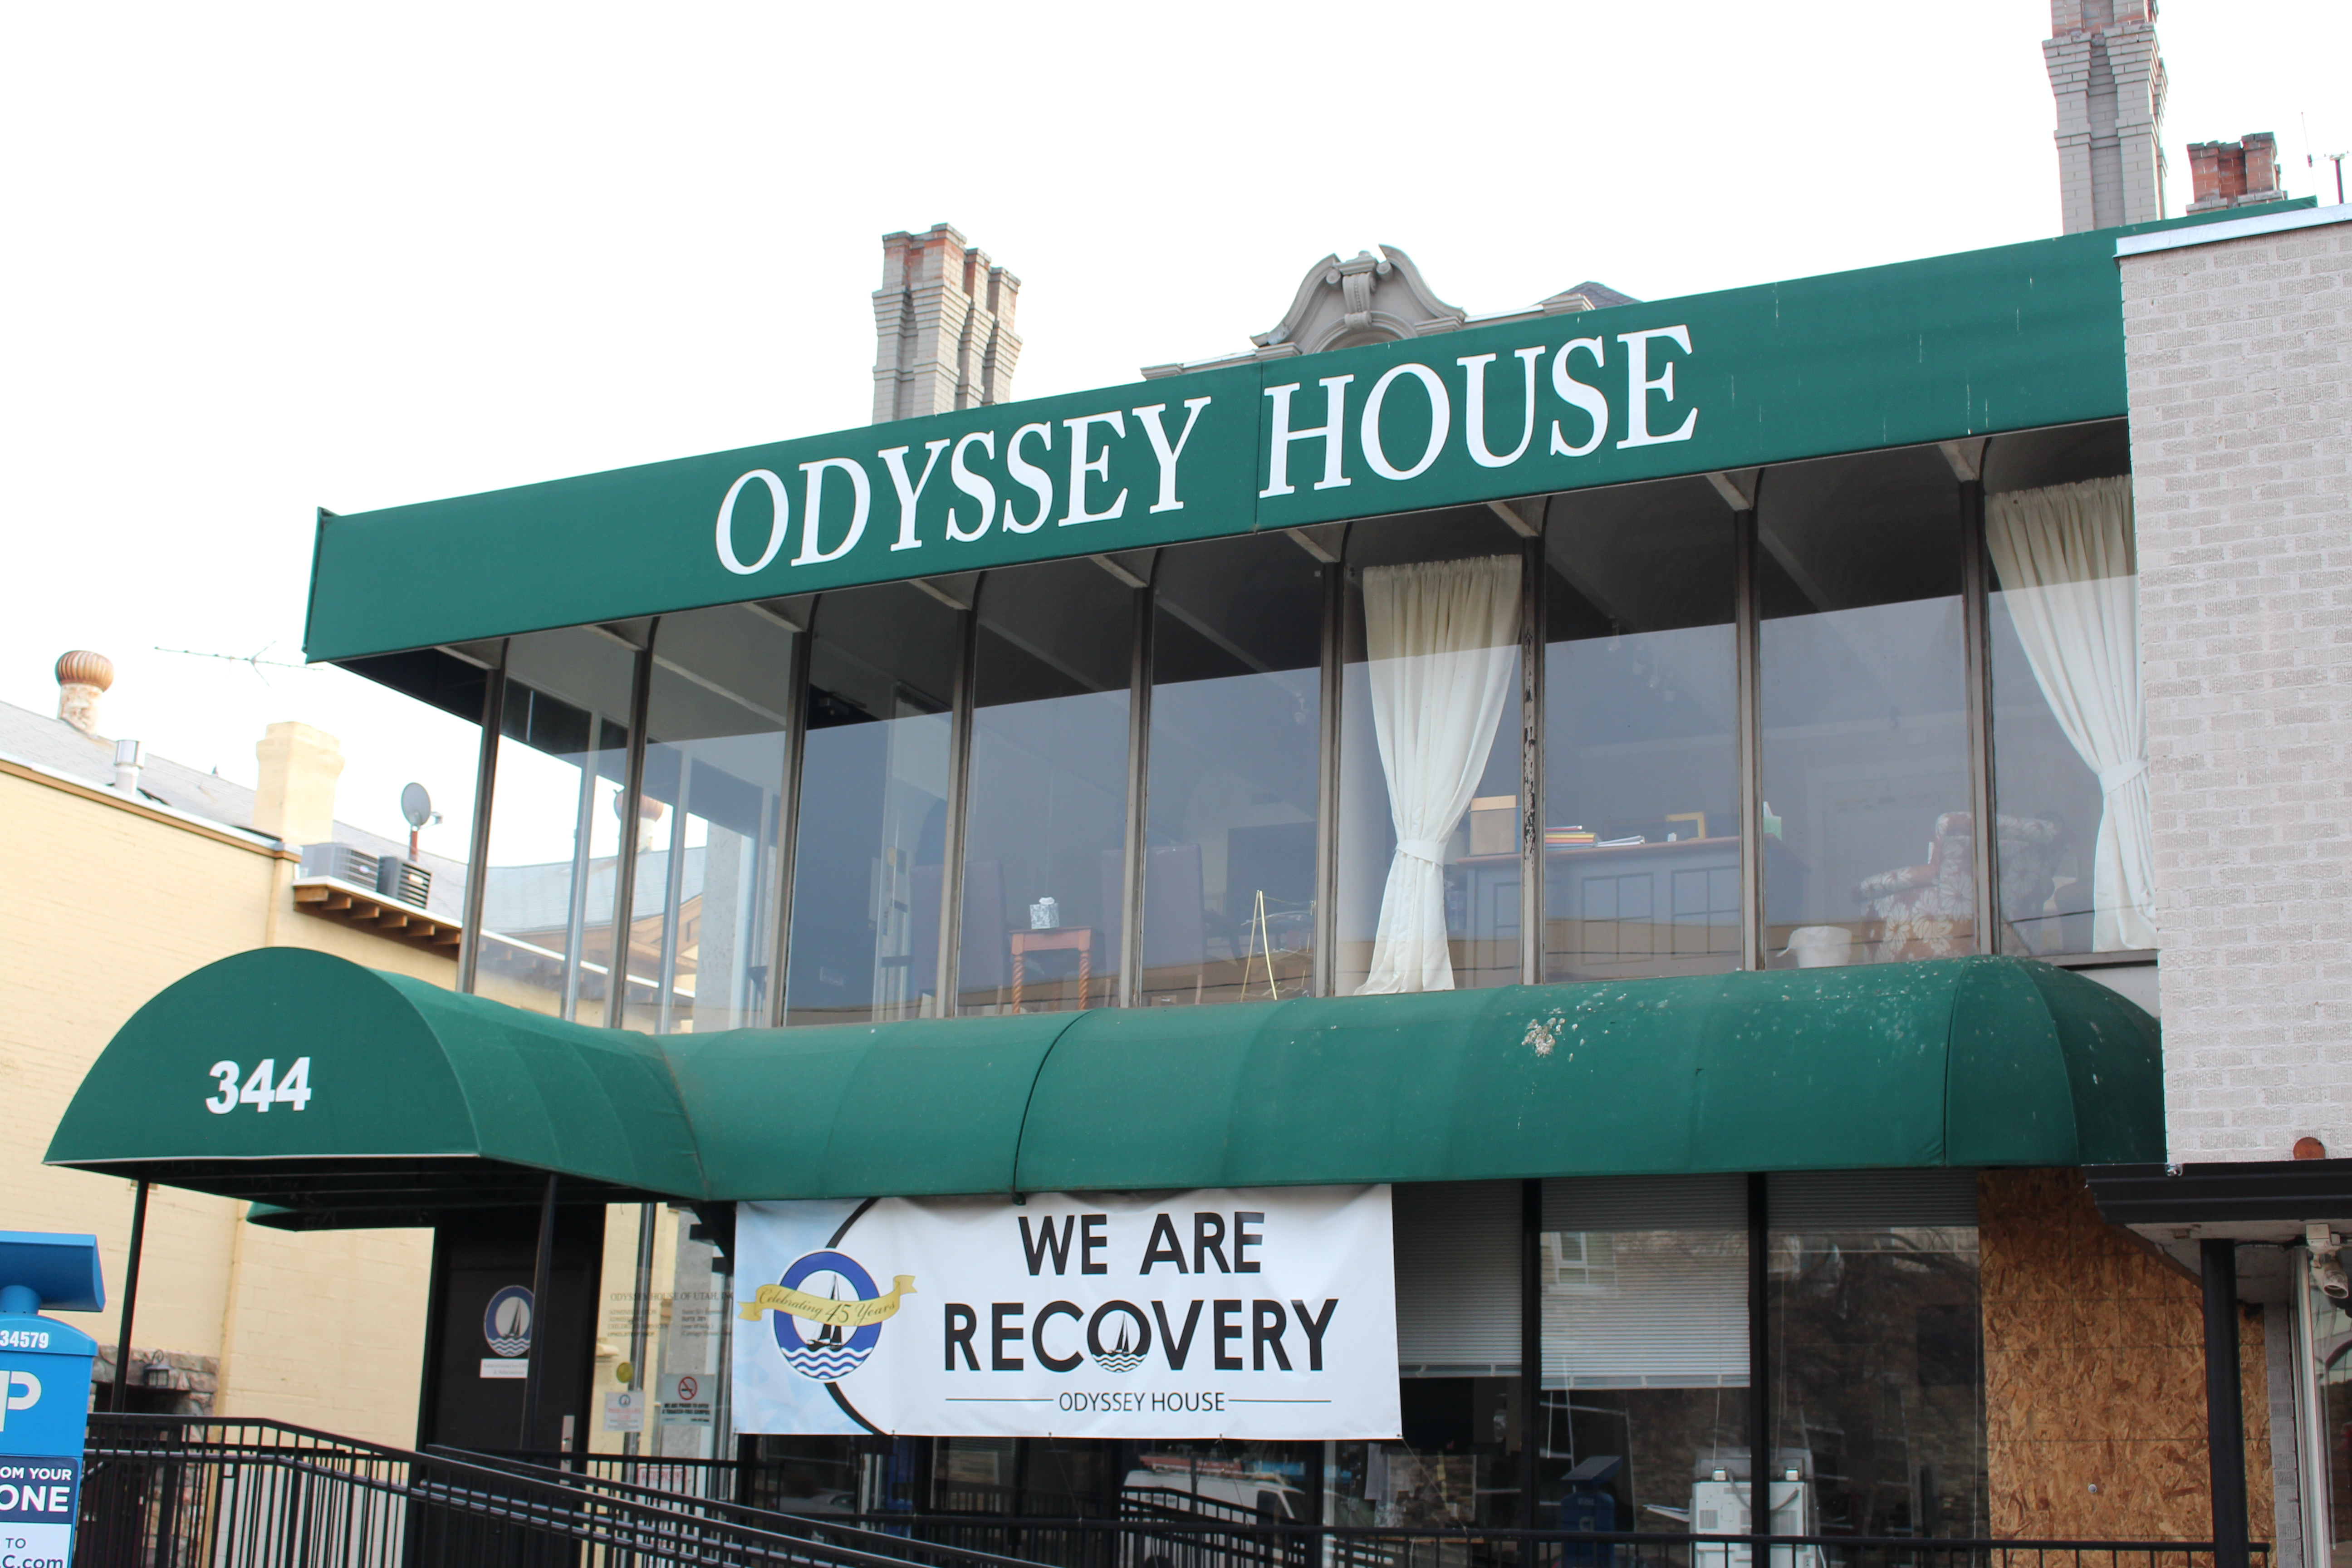 Odyssey House office building